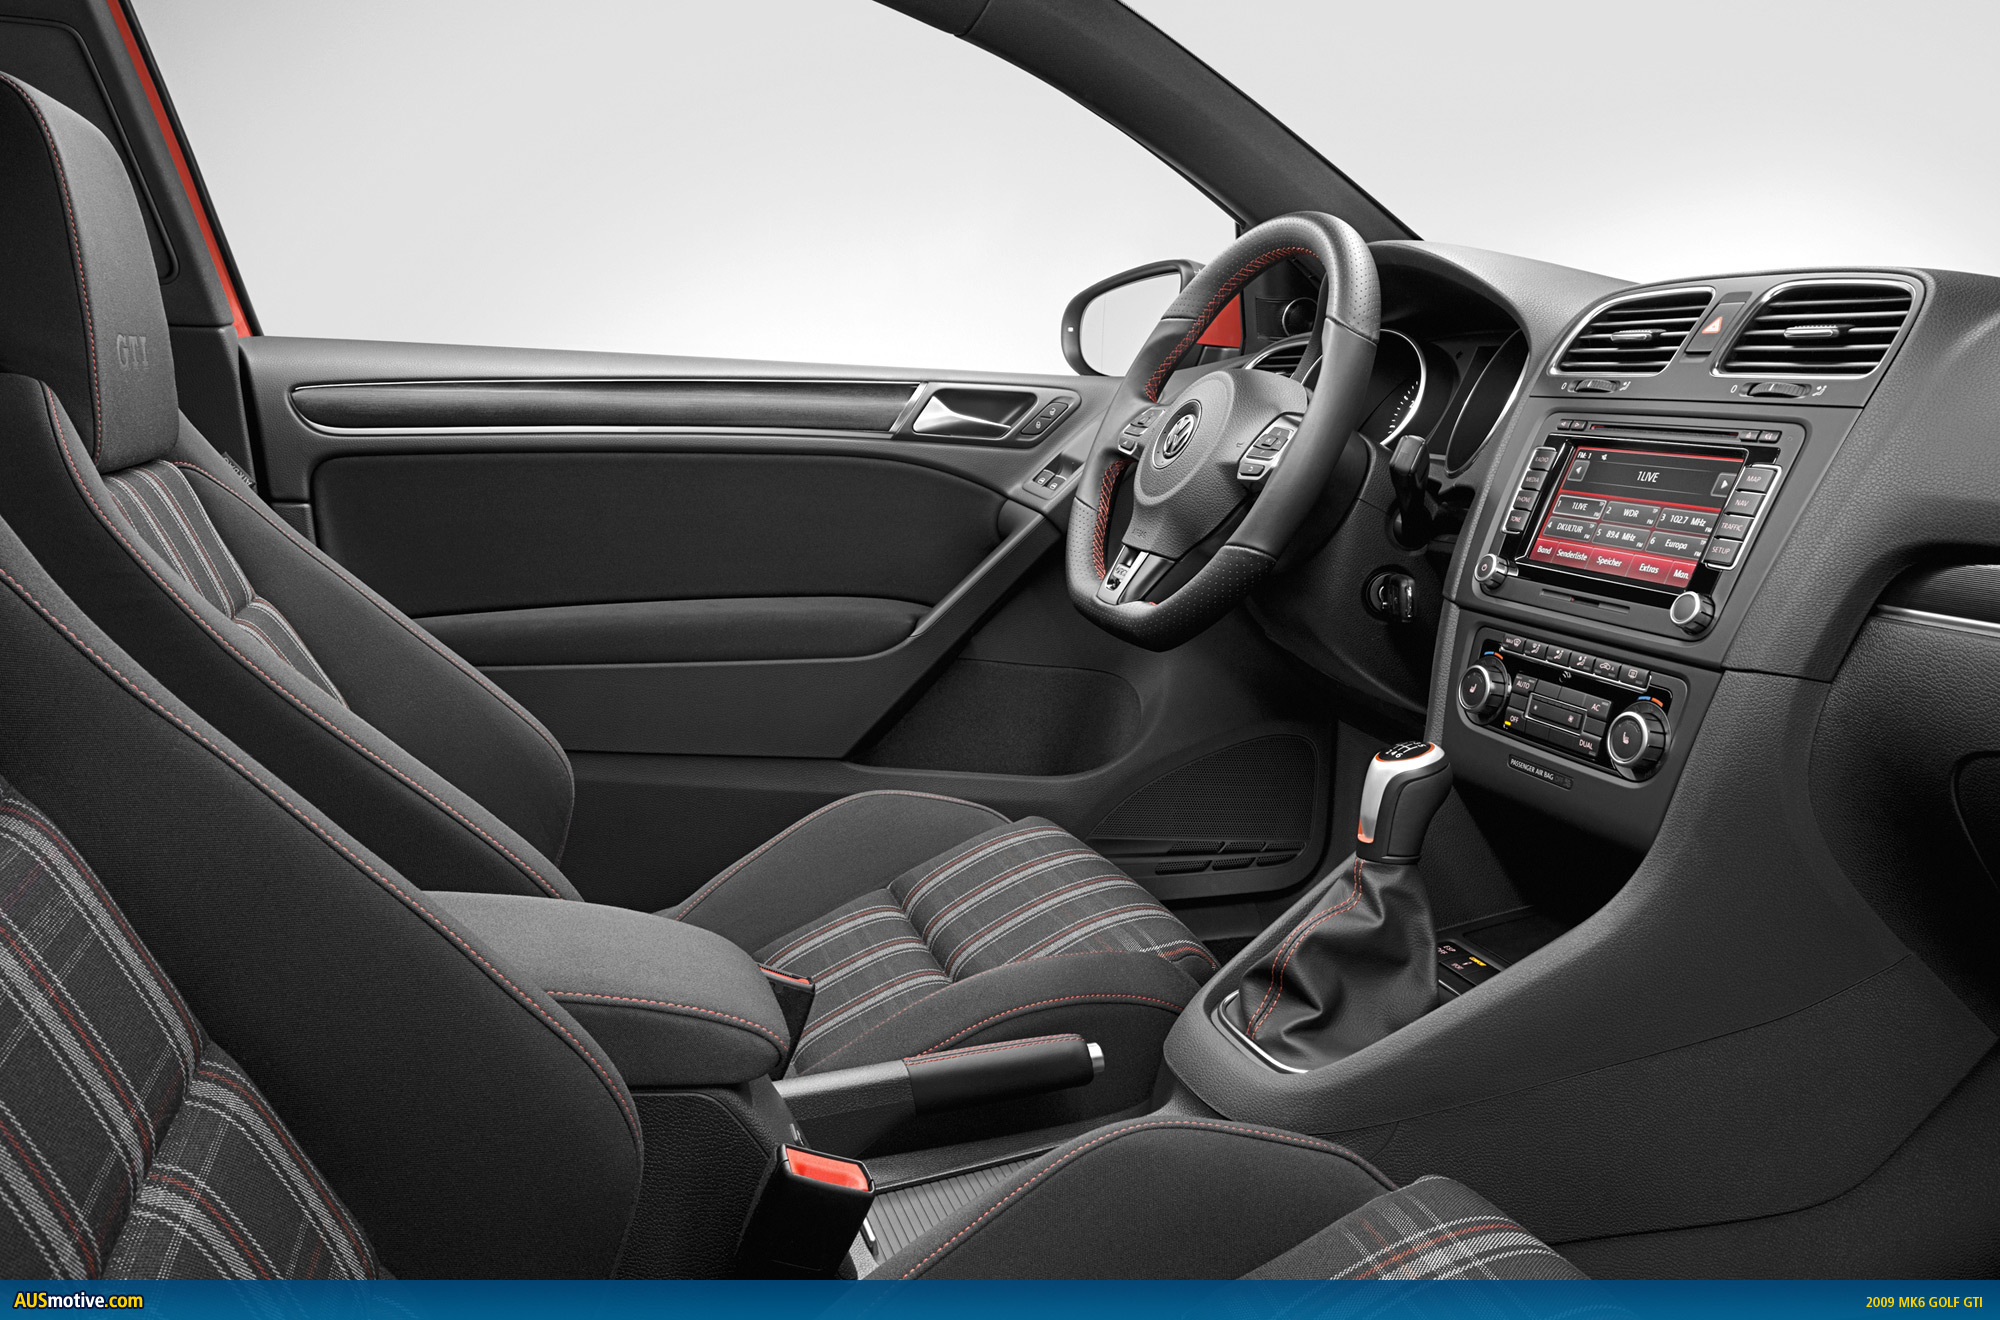 2009 mk6 golf gti image gallery for Golf 6 gti interieur